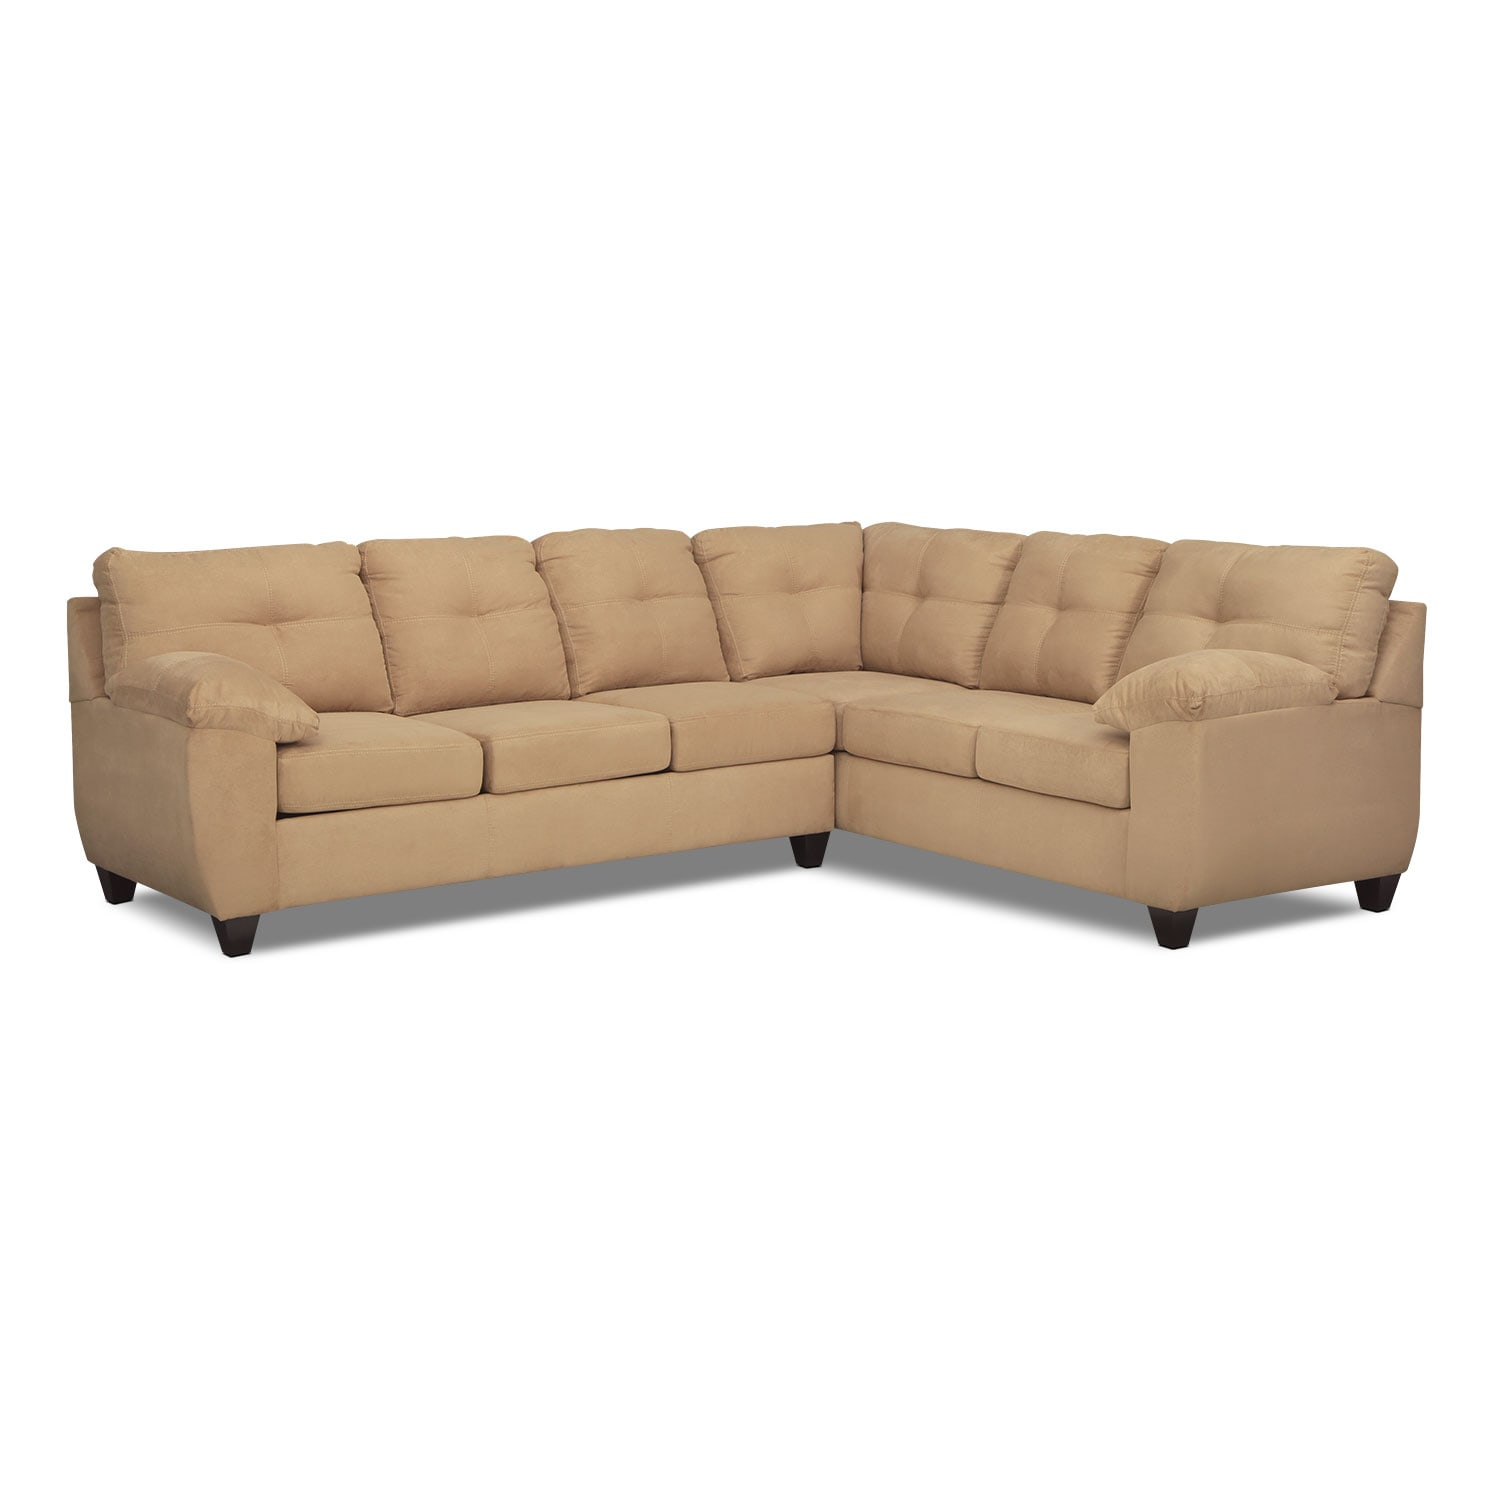 Rialto 2-Piece Sectional with Left-Facing Innerspring Sleeper - Camel